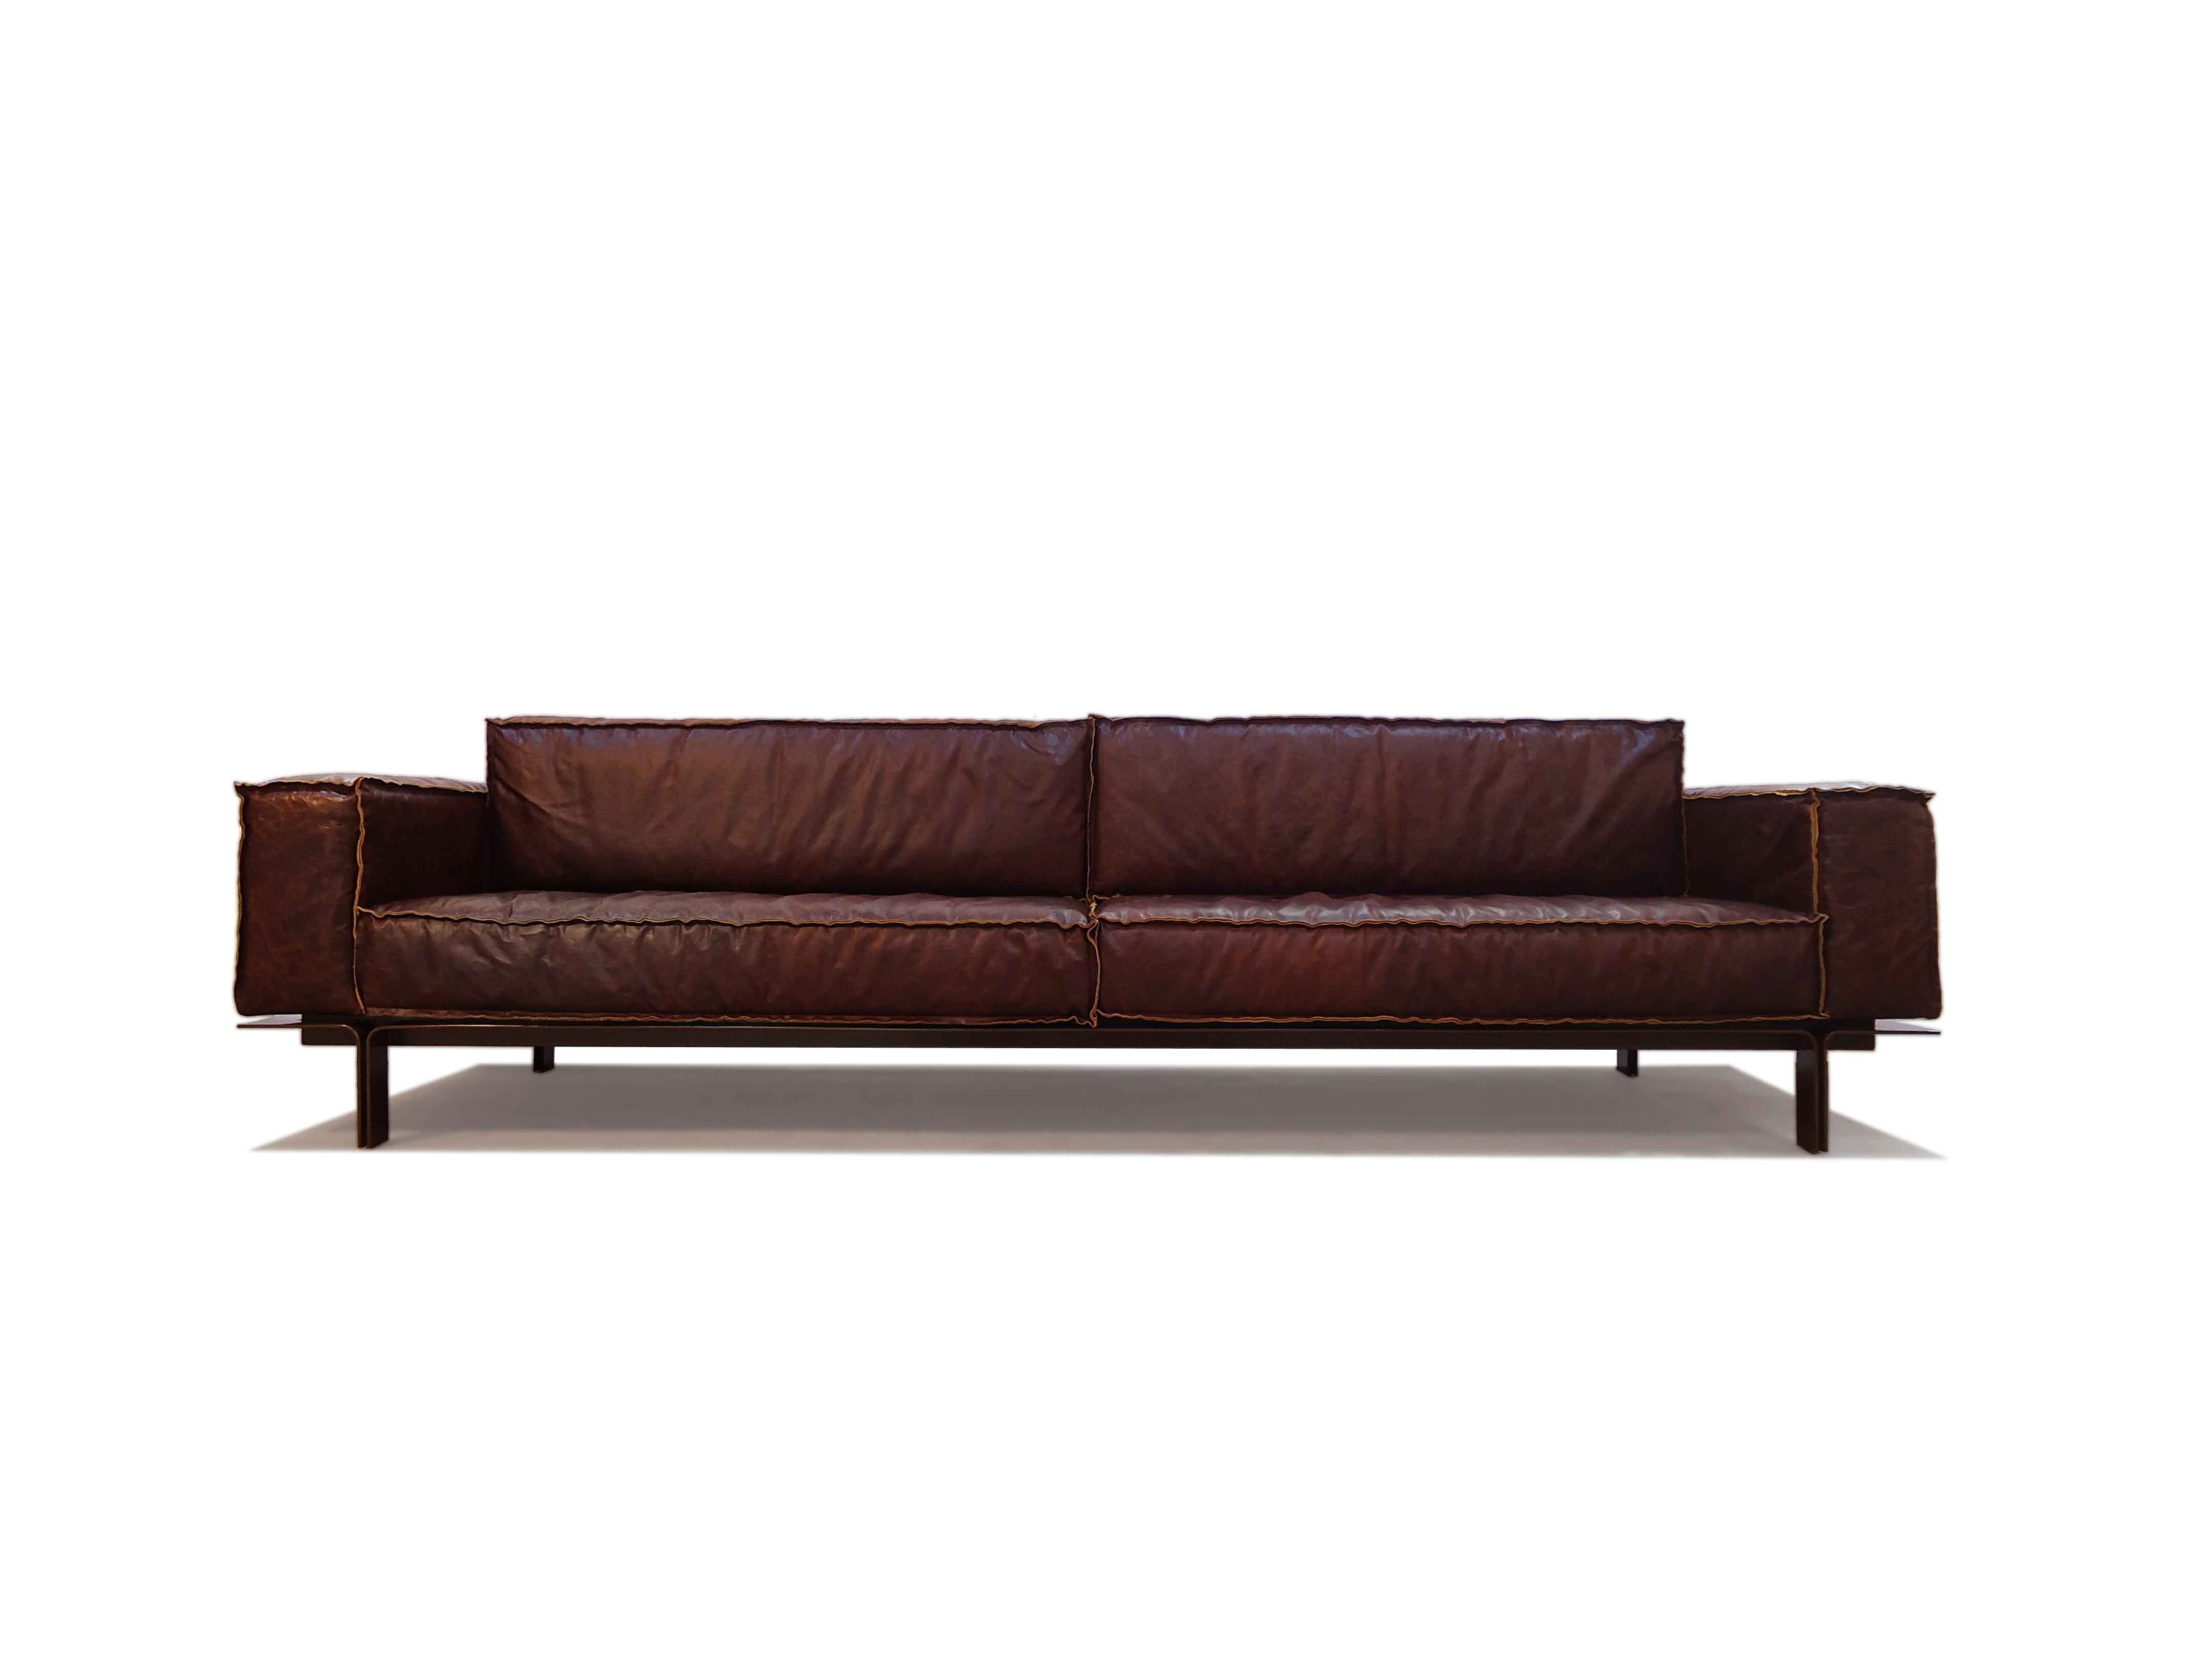 Sofas for Less Elegant Amazing sofas for Less In sofa Table Ideas with sofas for Less Wallpaper